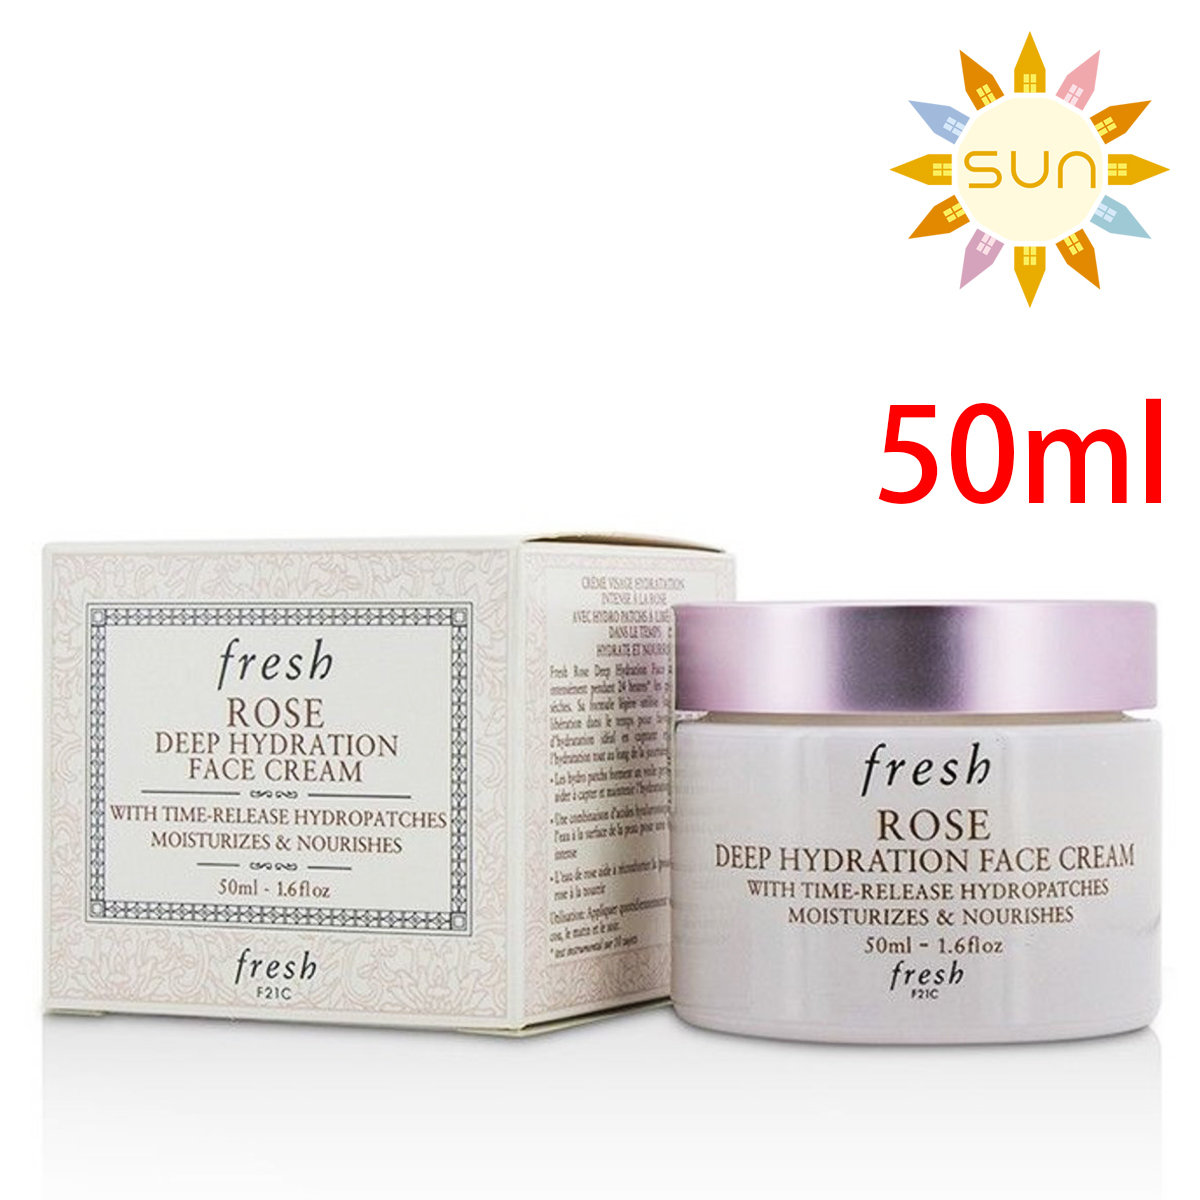 Rose Deep Hydration Face Cream 50ml